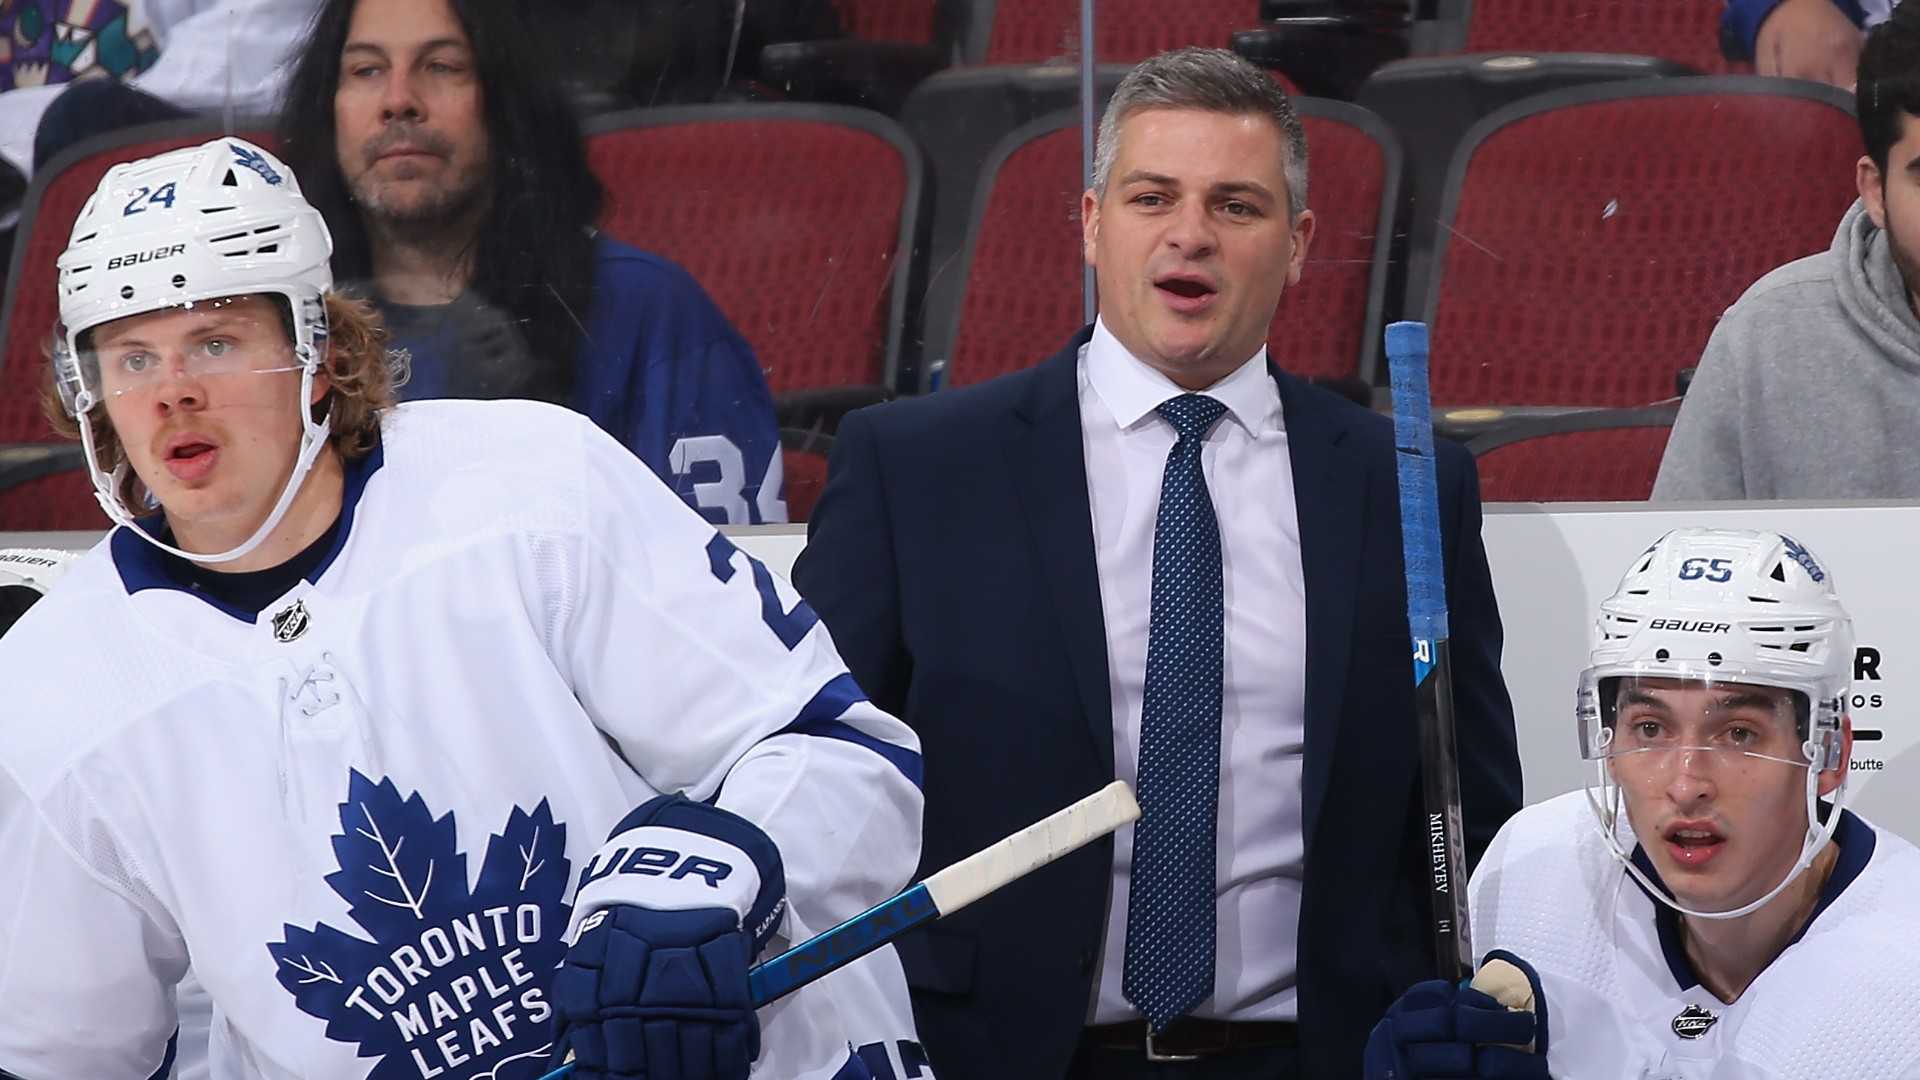 Maple Leafs coach Sheldon Keefe after Toronto blows three-goal lead, loses in OT: 'We just got what we deserved'